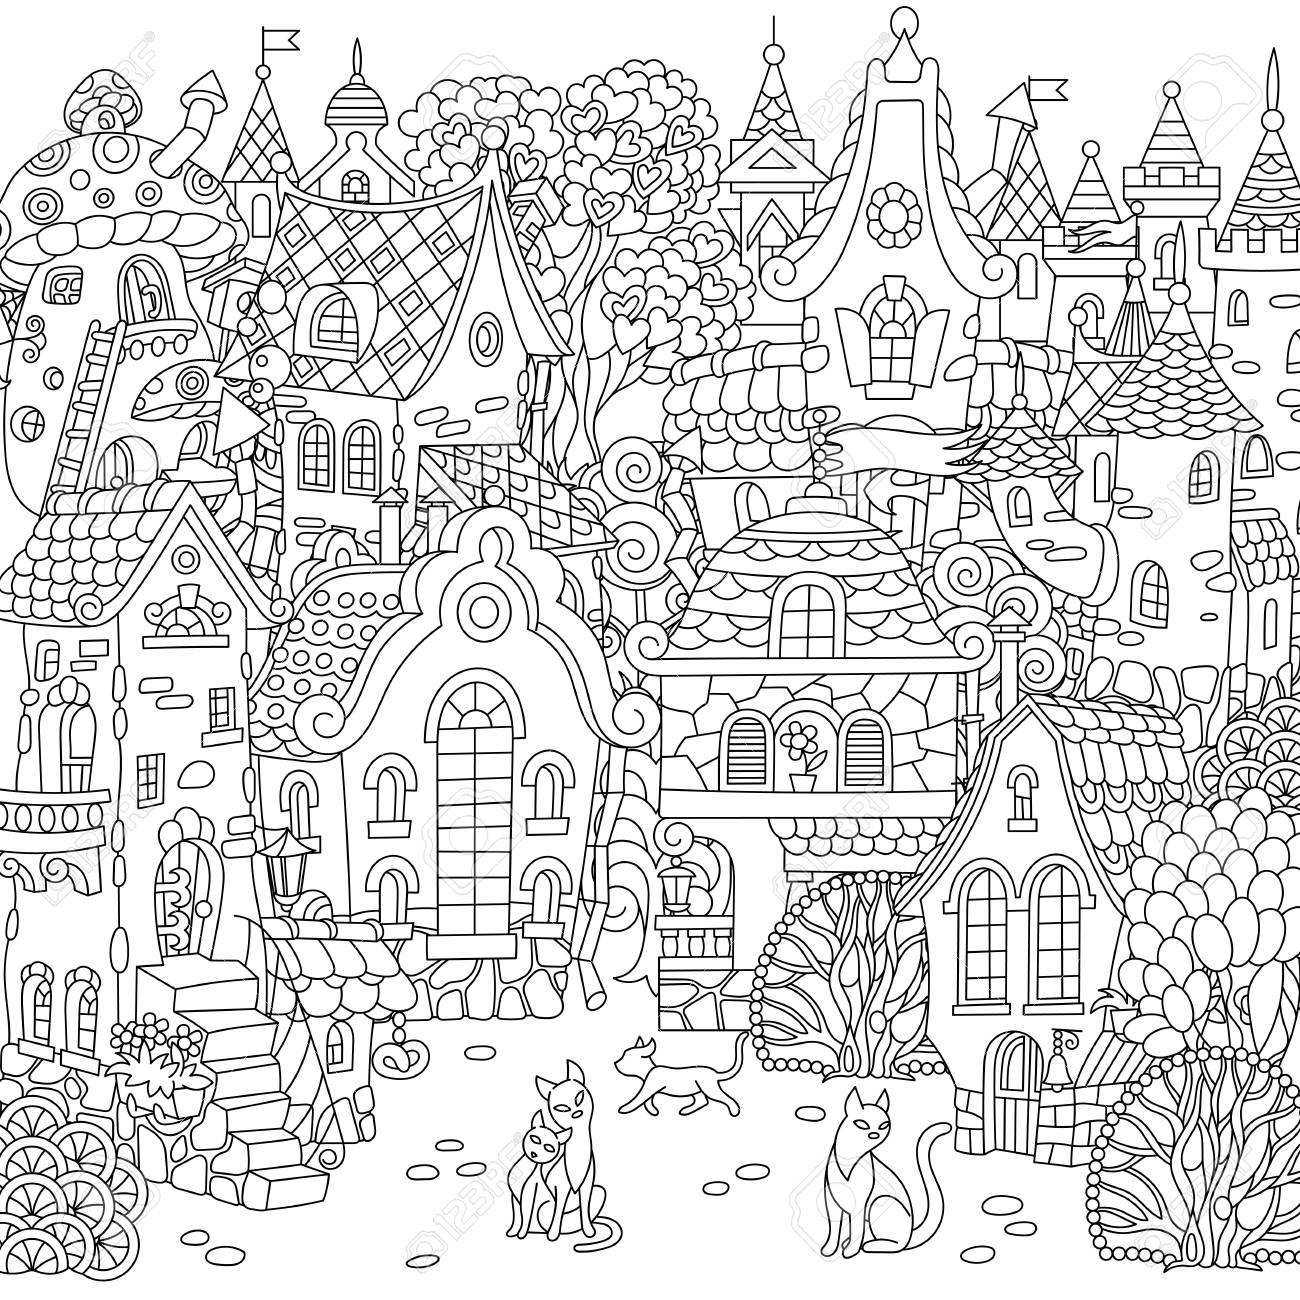 Fairy tale town city landscape fantasy cityscape with vintage houses and cats coloring